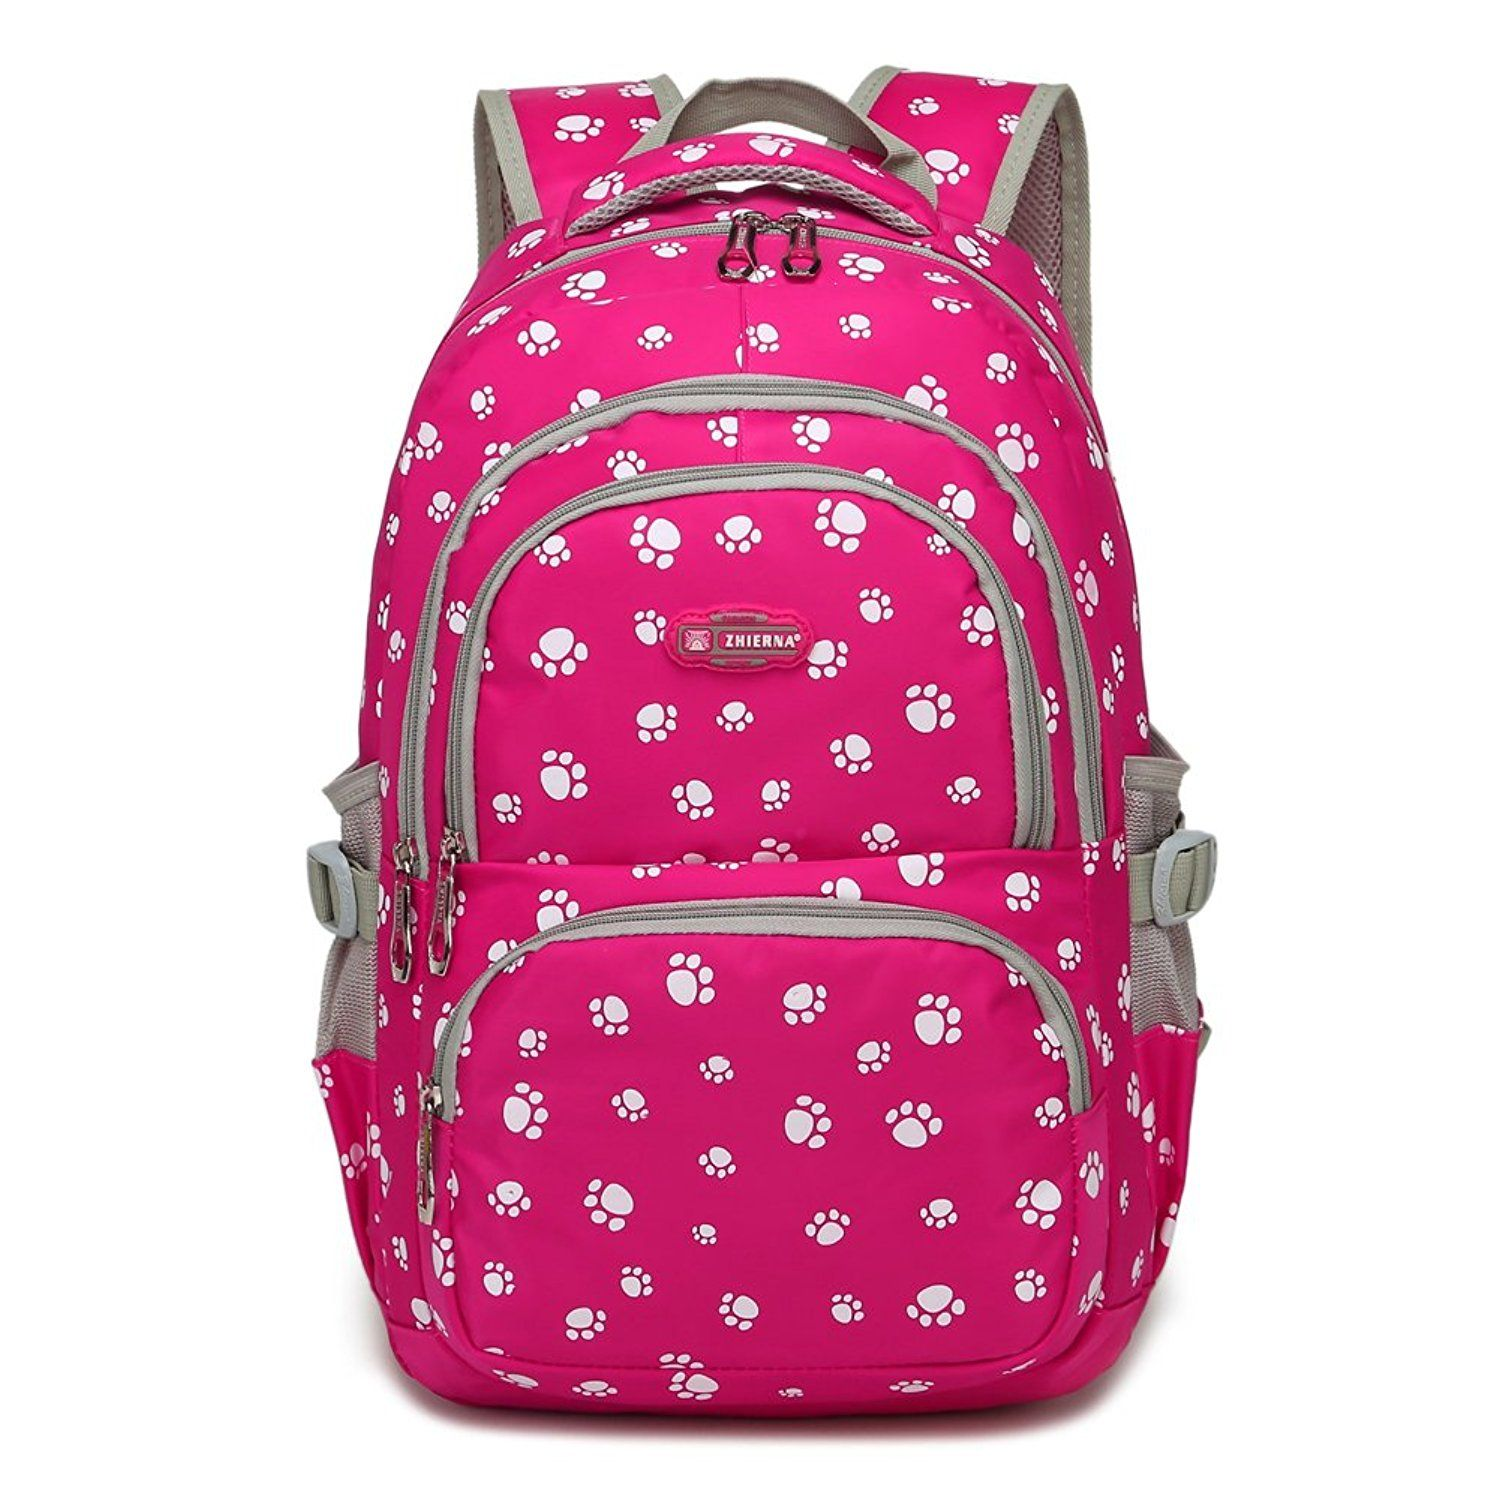 9f1eebf12d Dog Pawprint Cat Fingerprint Backpack for Elementary or Middle School Girls    For more information